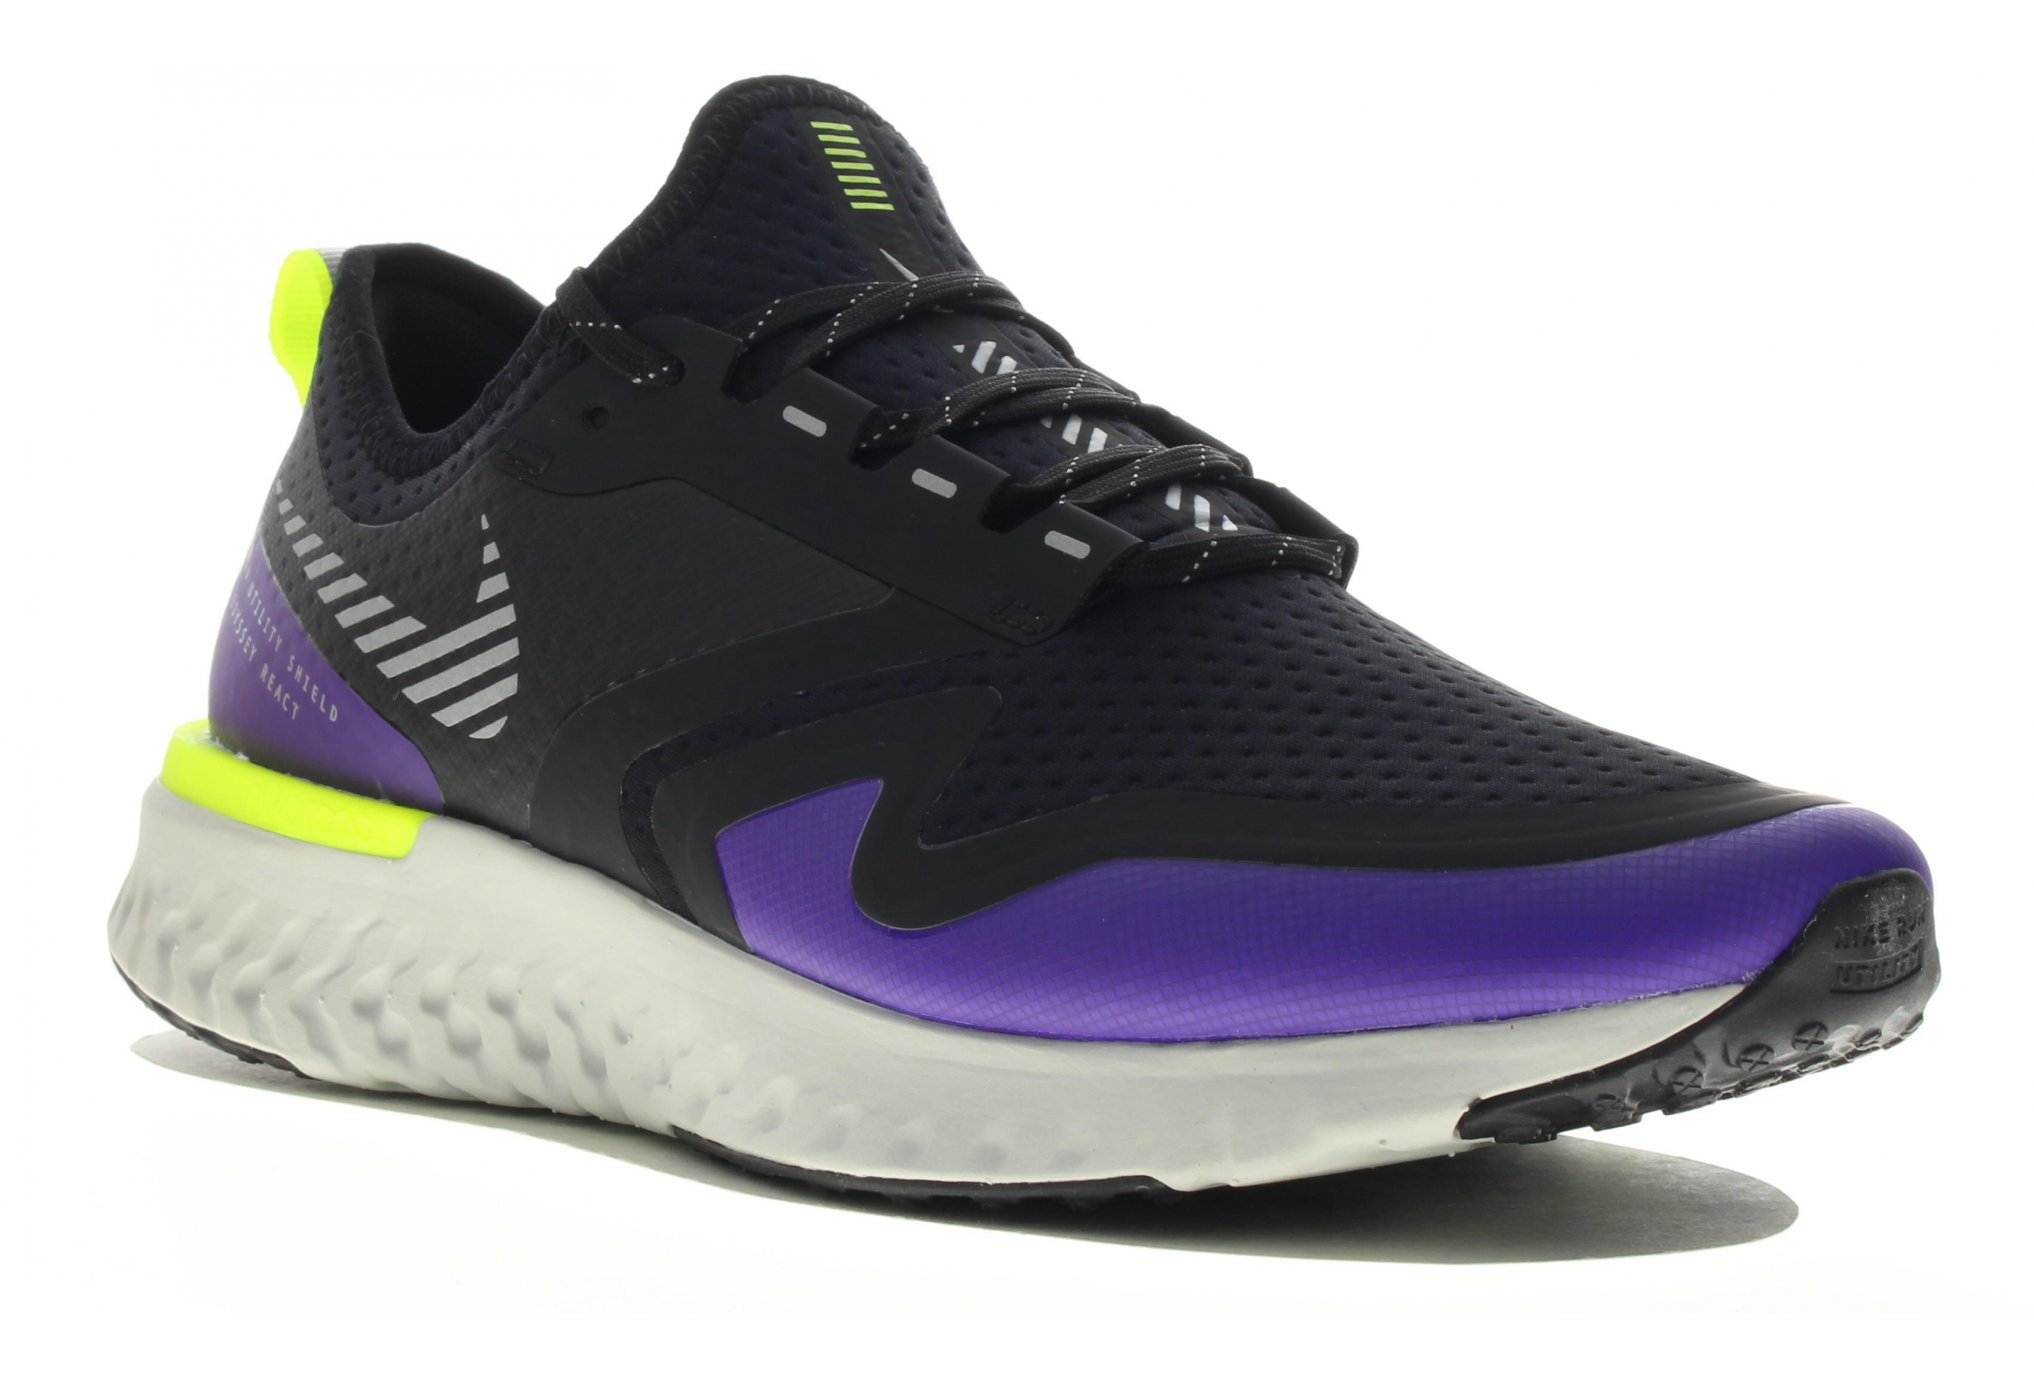 Nike Odyssey React 2 Shield Chaussures homme